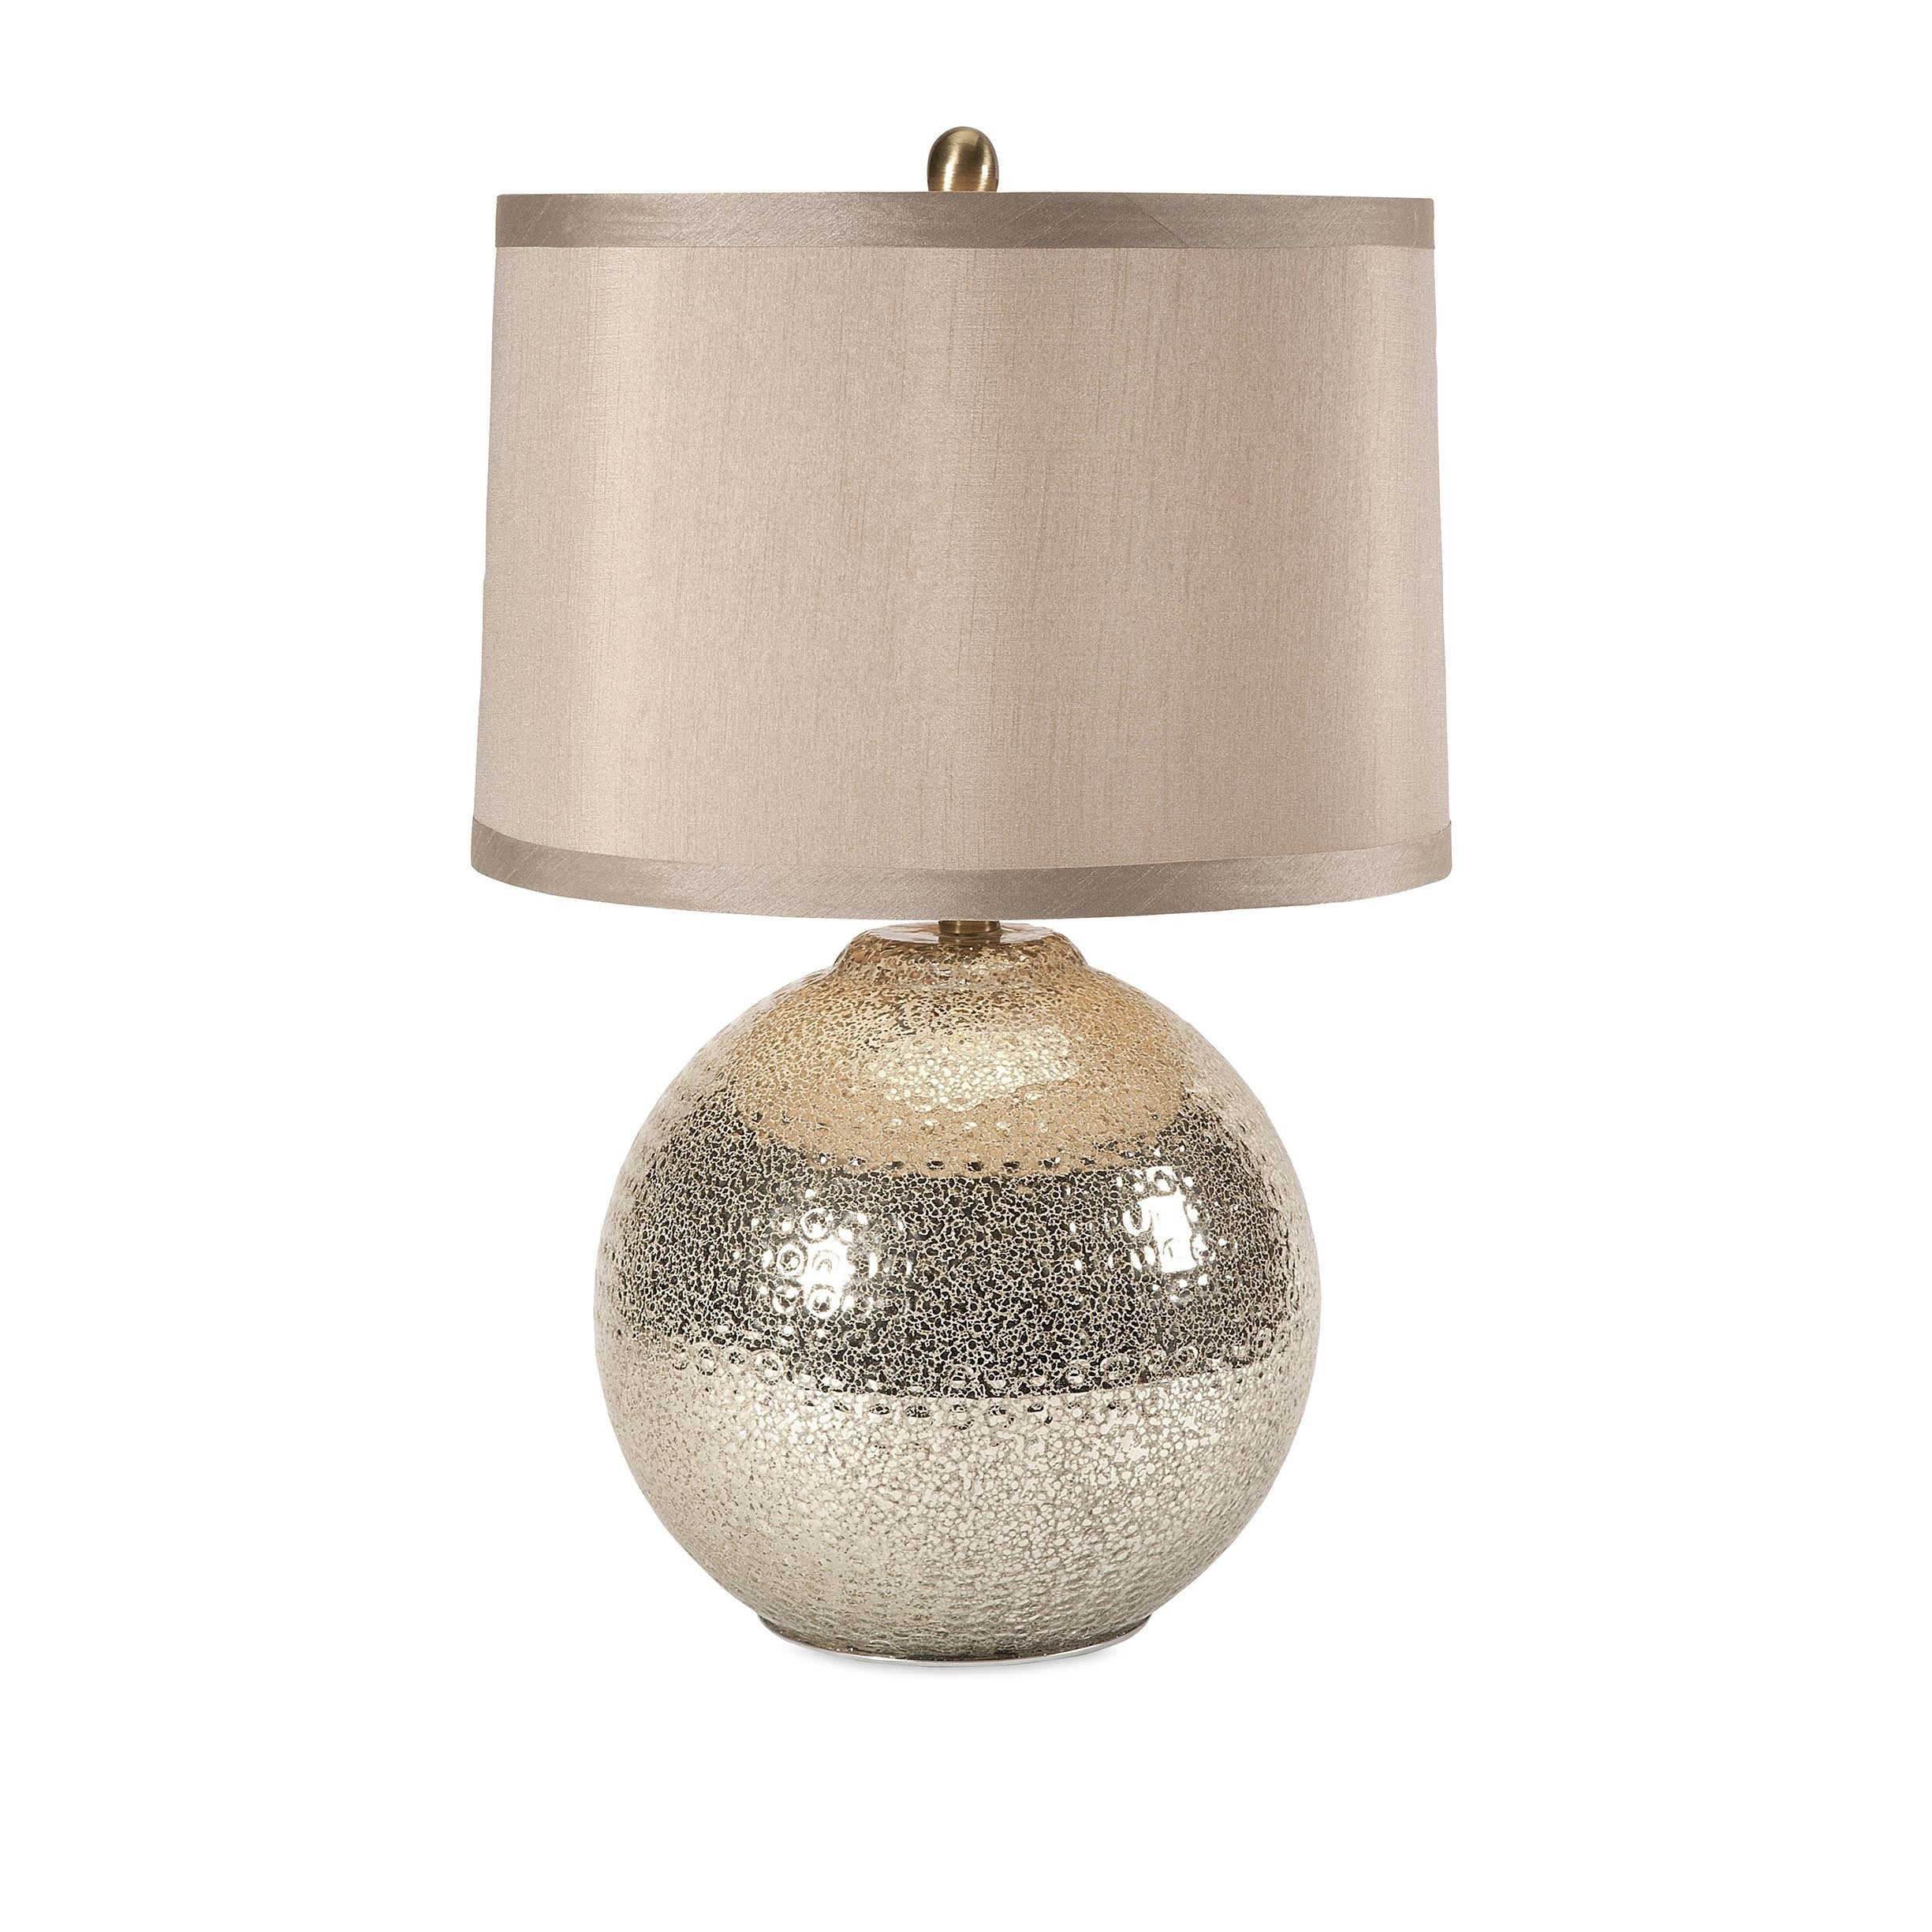 IMAX Bolton Mercury Glass Table Lamp (Table lamps), Beige...